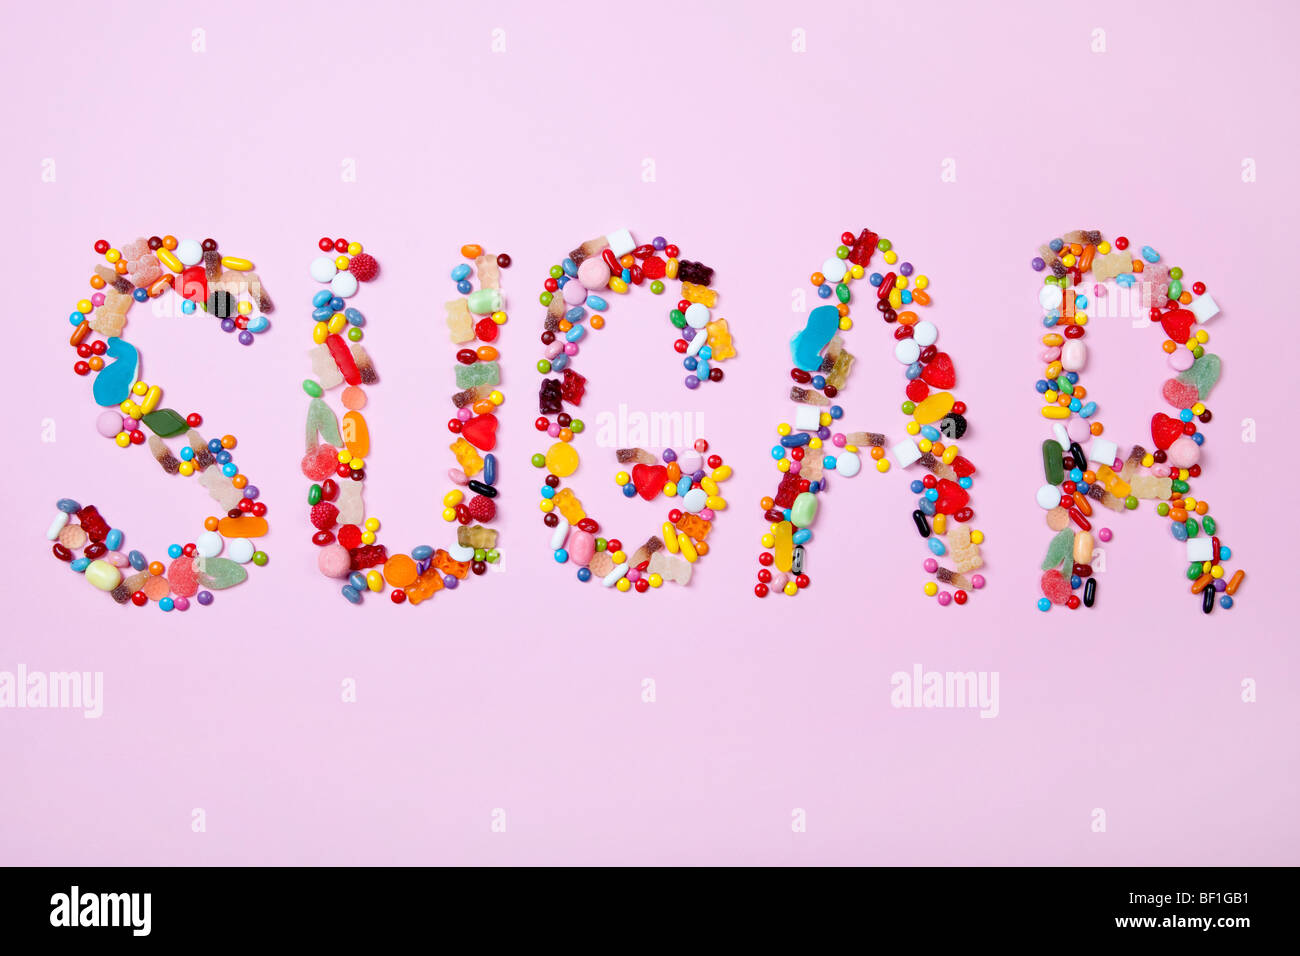 Candies spelling out SUGAR - Stock Image